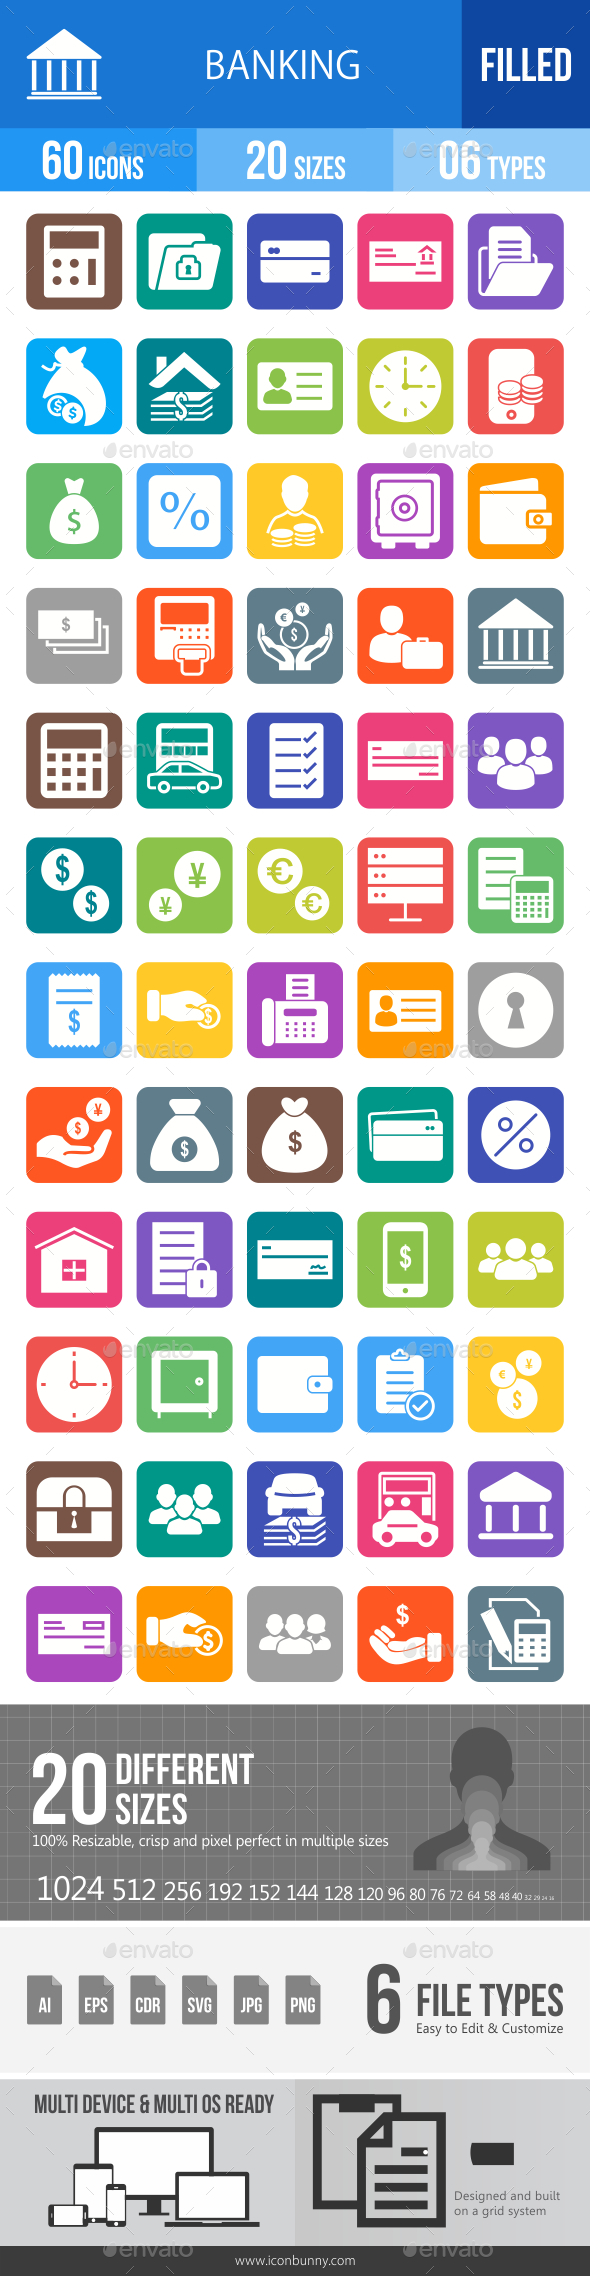 60 Banking Filled Blue & Black Icons - Icons